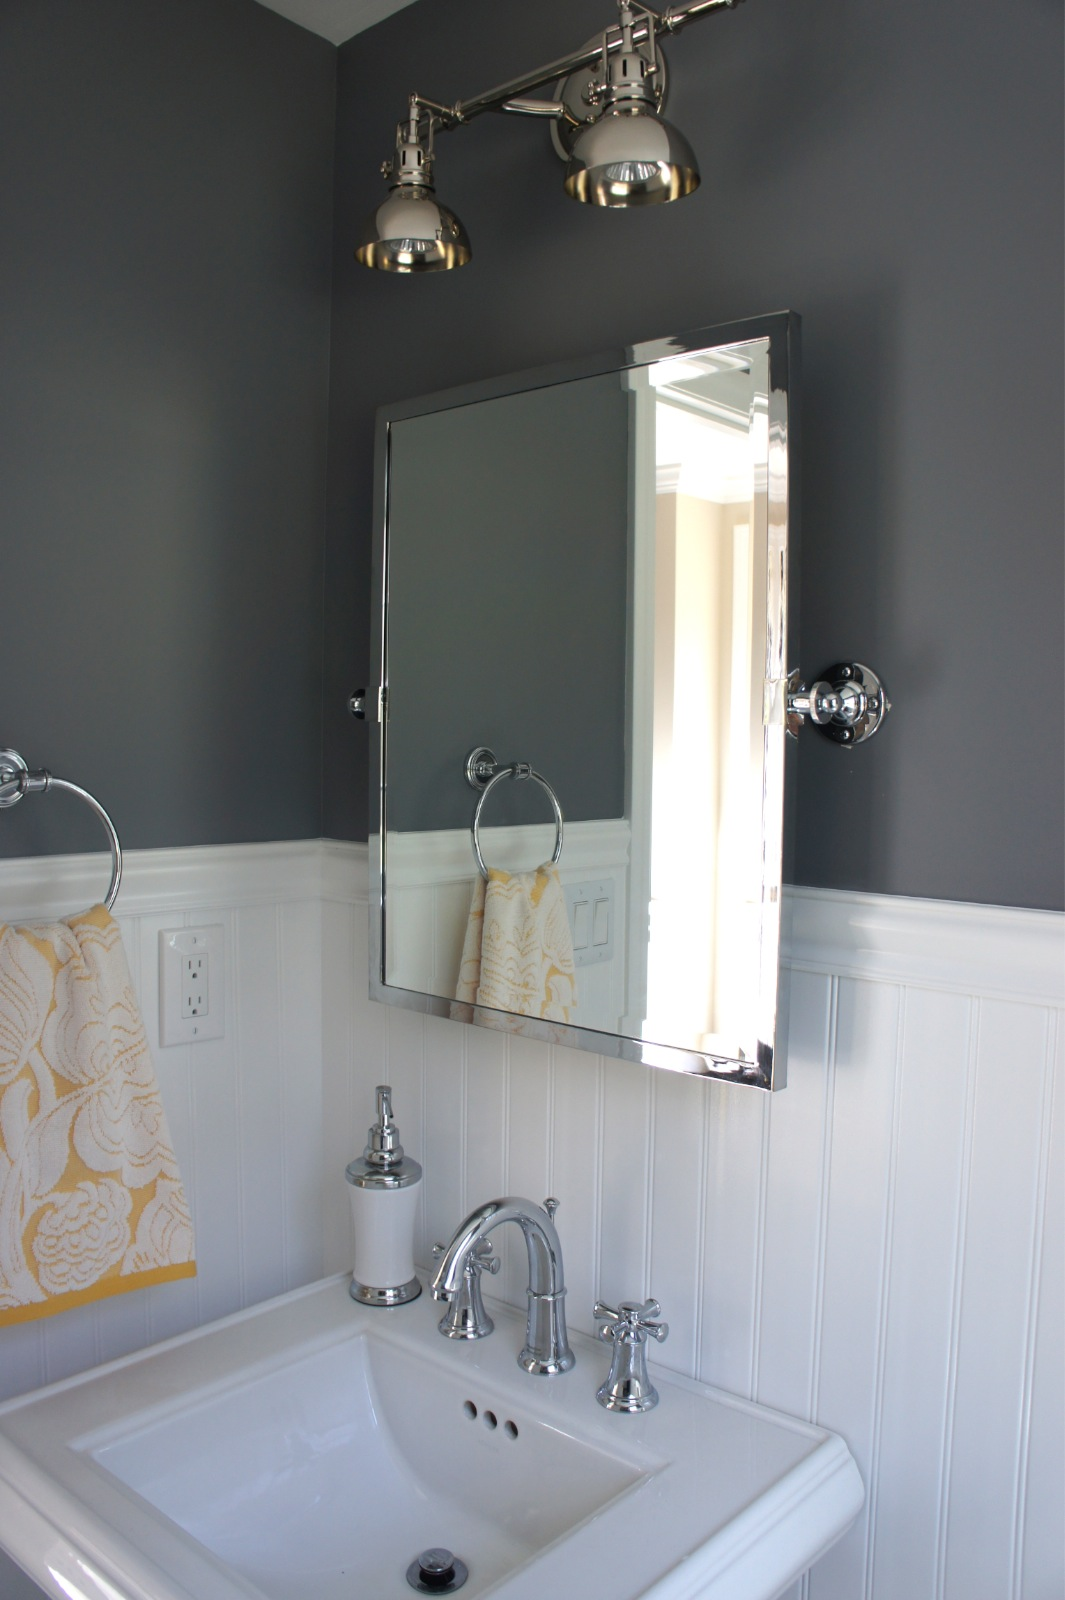 Innovative Double Bathroom Wall Mounted Light Fixtures Above Wall Mirror And